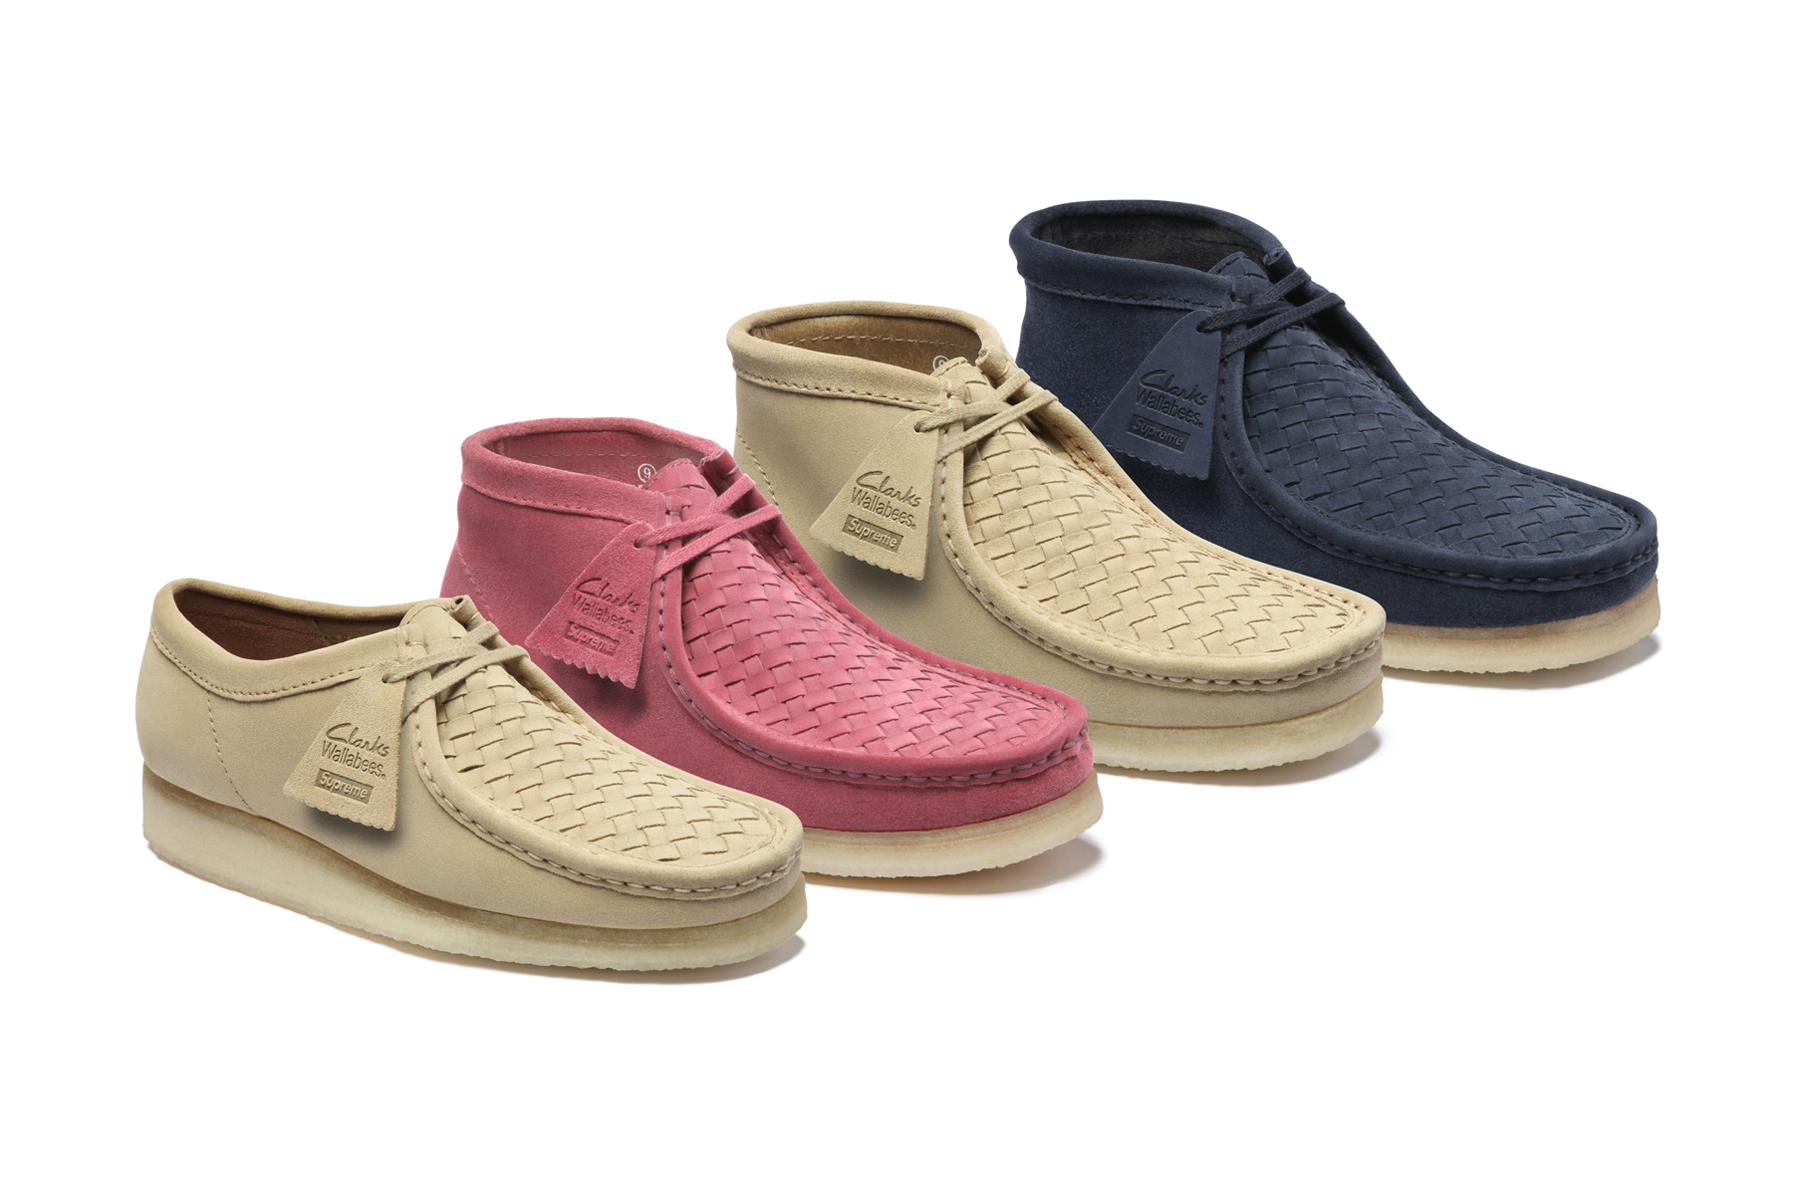 Supreme x Clarks : On dit YES WE CLARKS